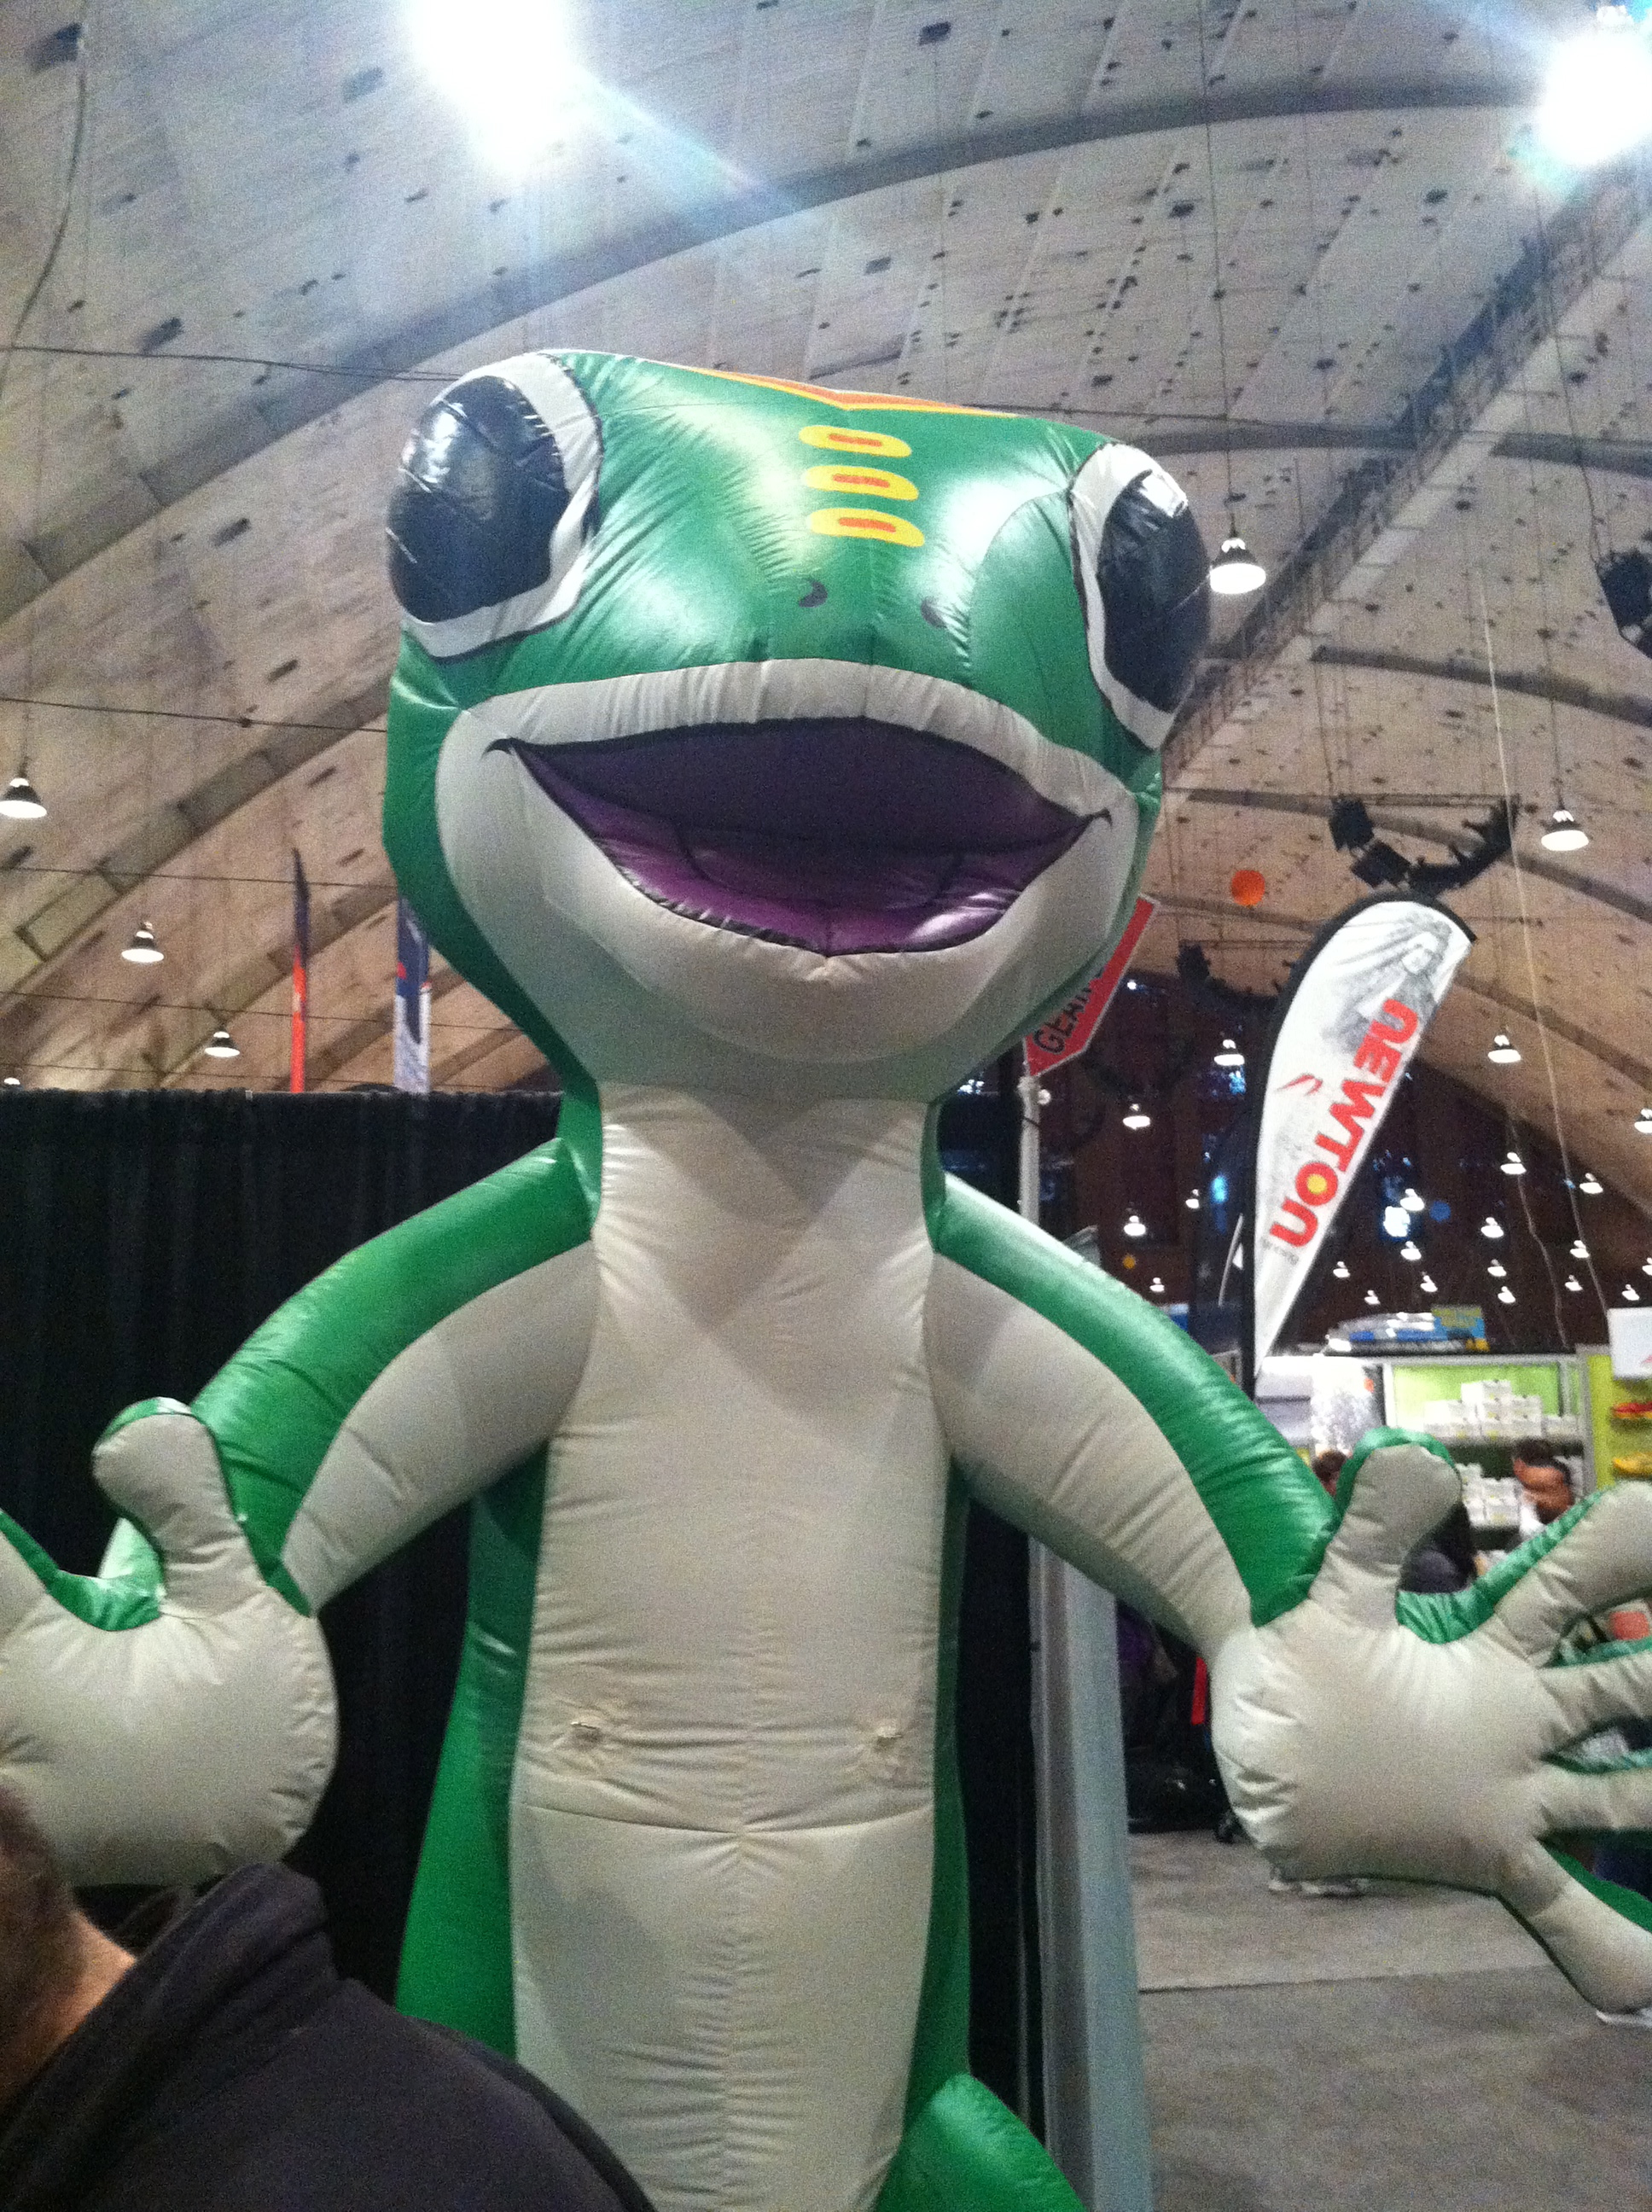 Geico booth at the Rock 'n' Roll USA Marathon Expo 2012